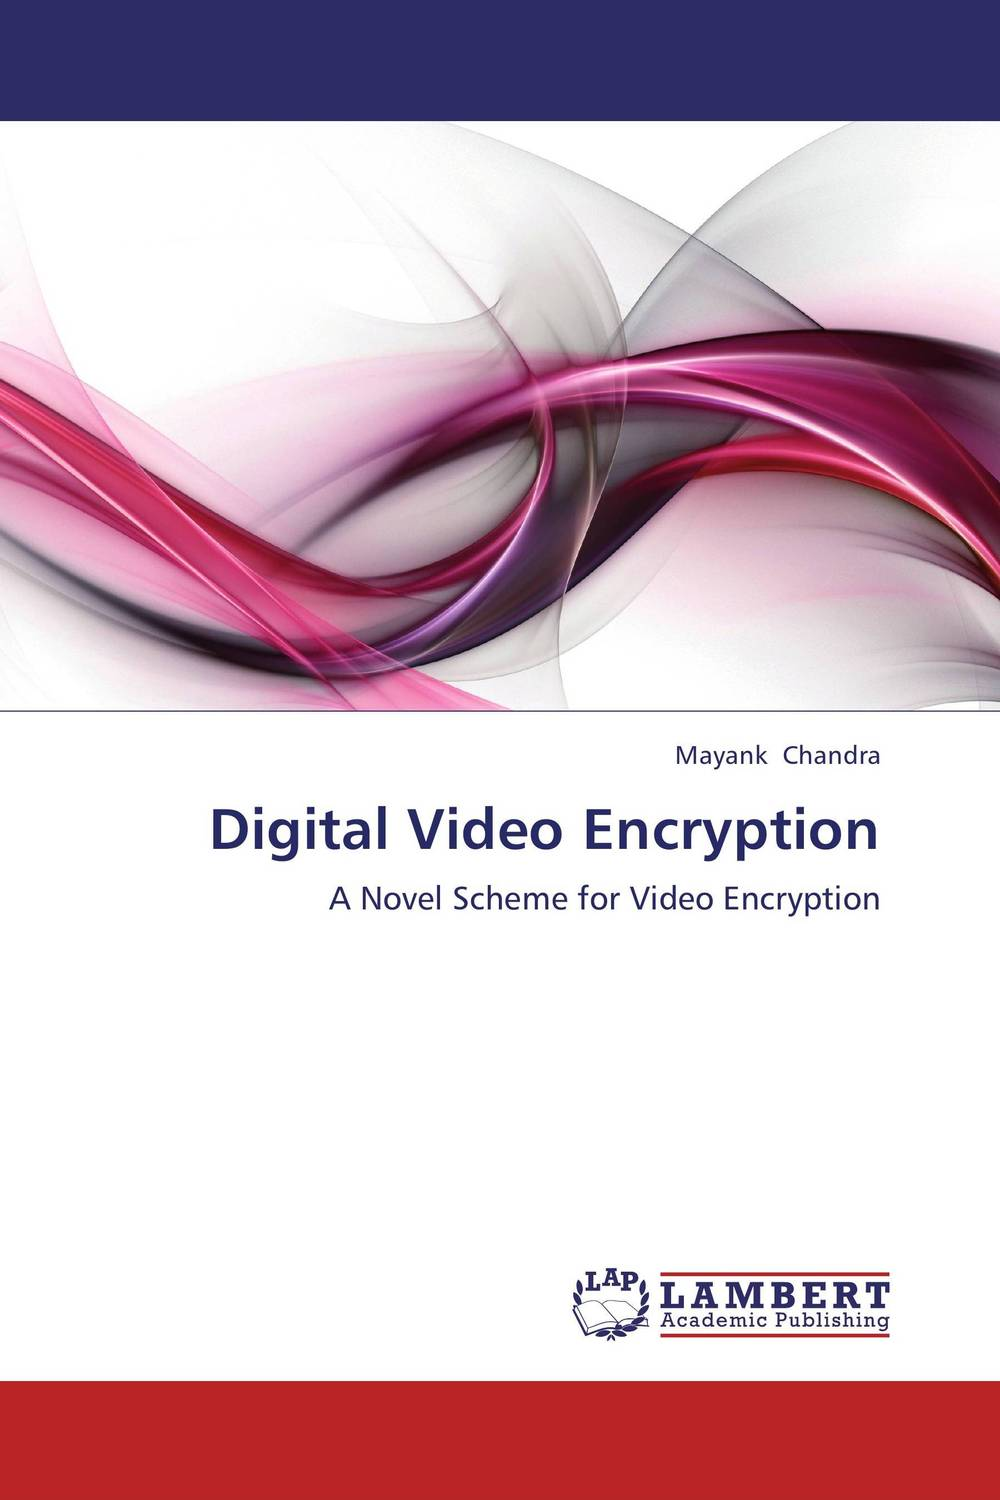 Digital Video Encryption proactive security scheme based on threshold with refreshment of key